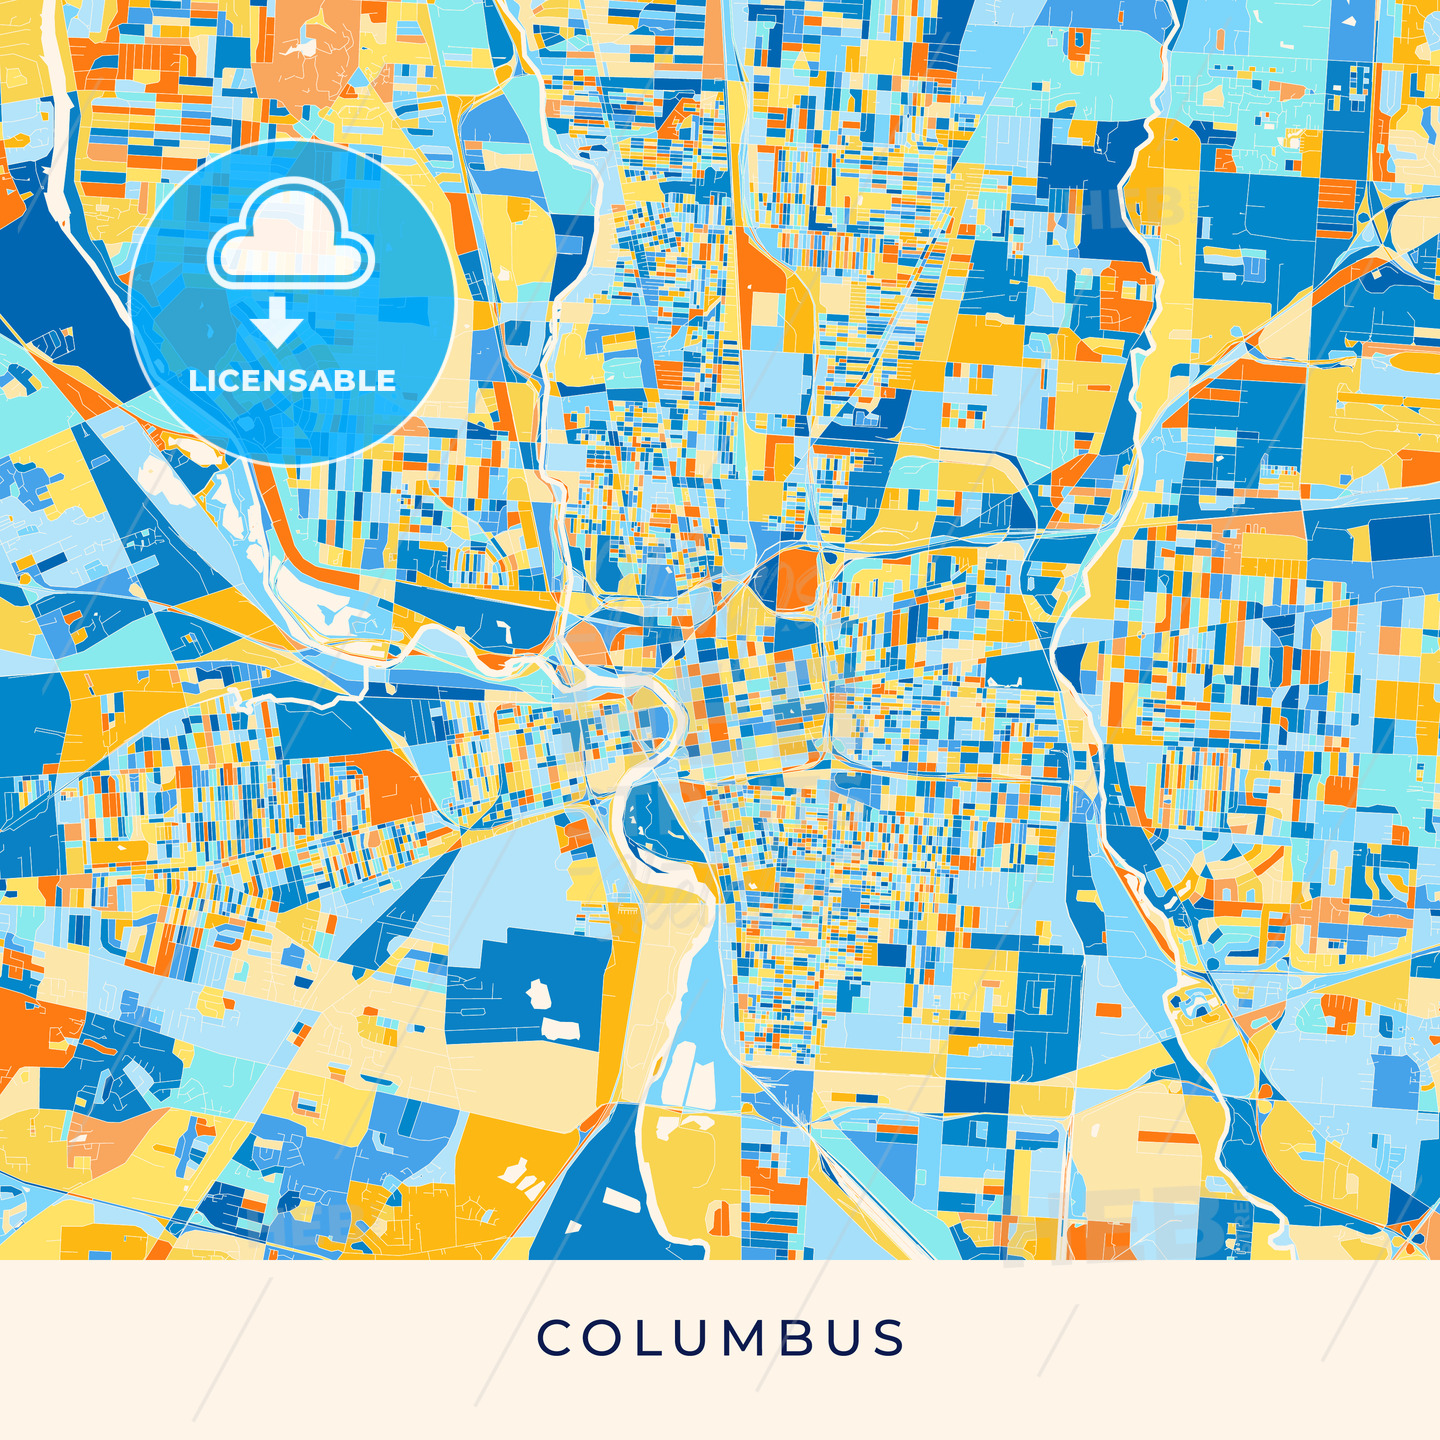 Columbus colorful map poster template | HEBSTREITS Sketches